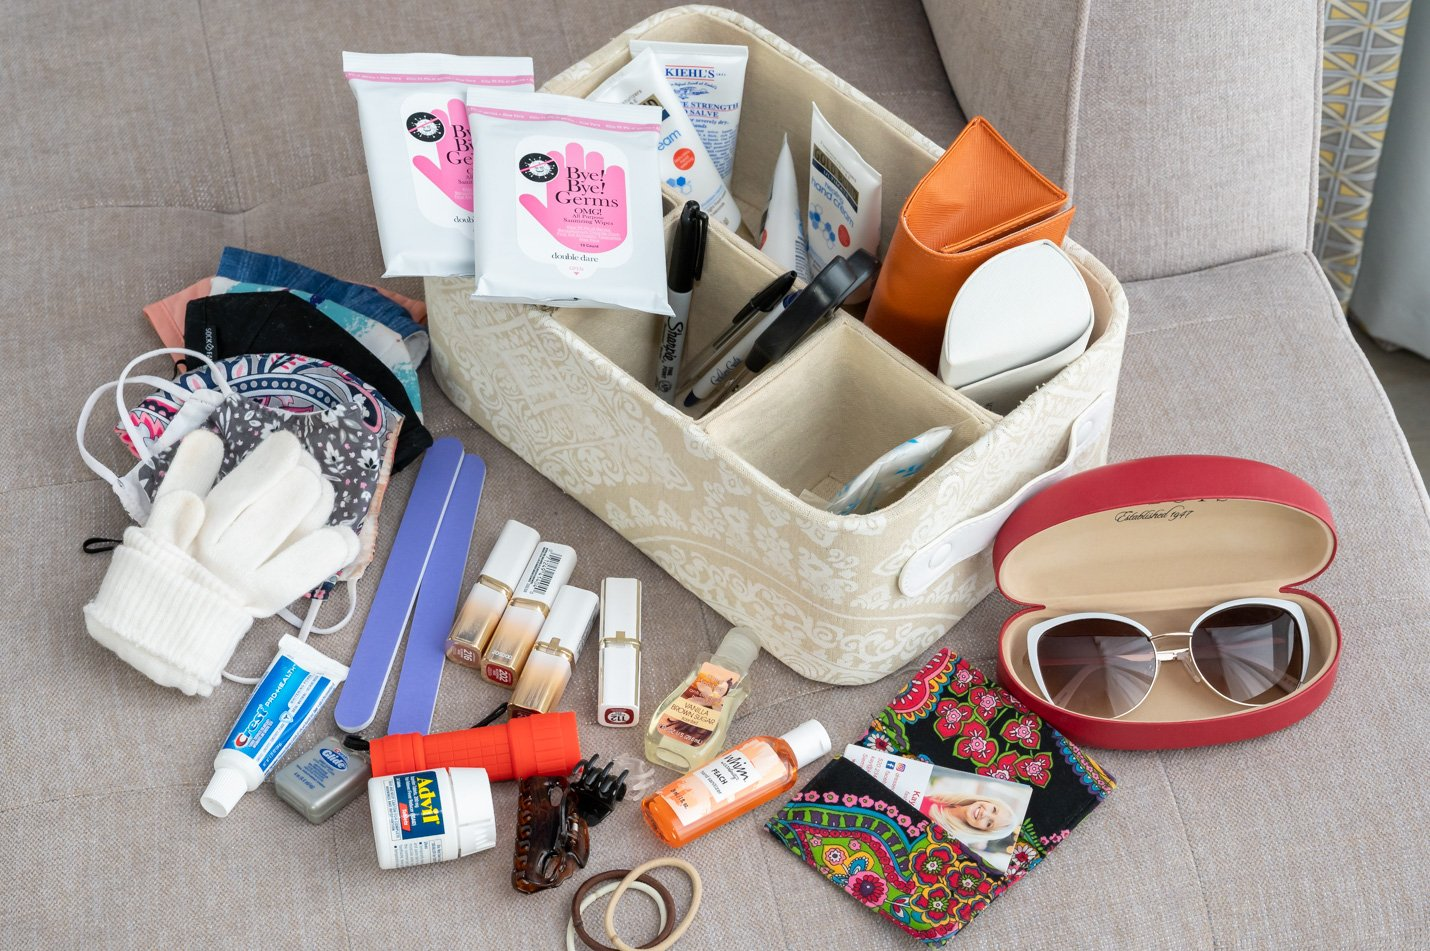 What's In My Purse Organizer Bin